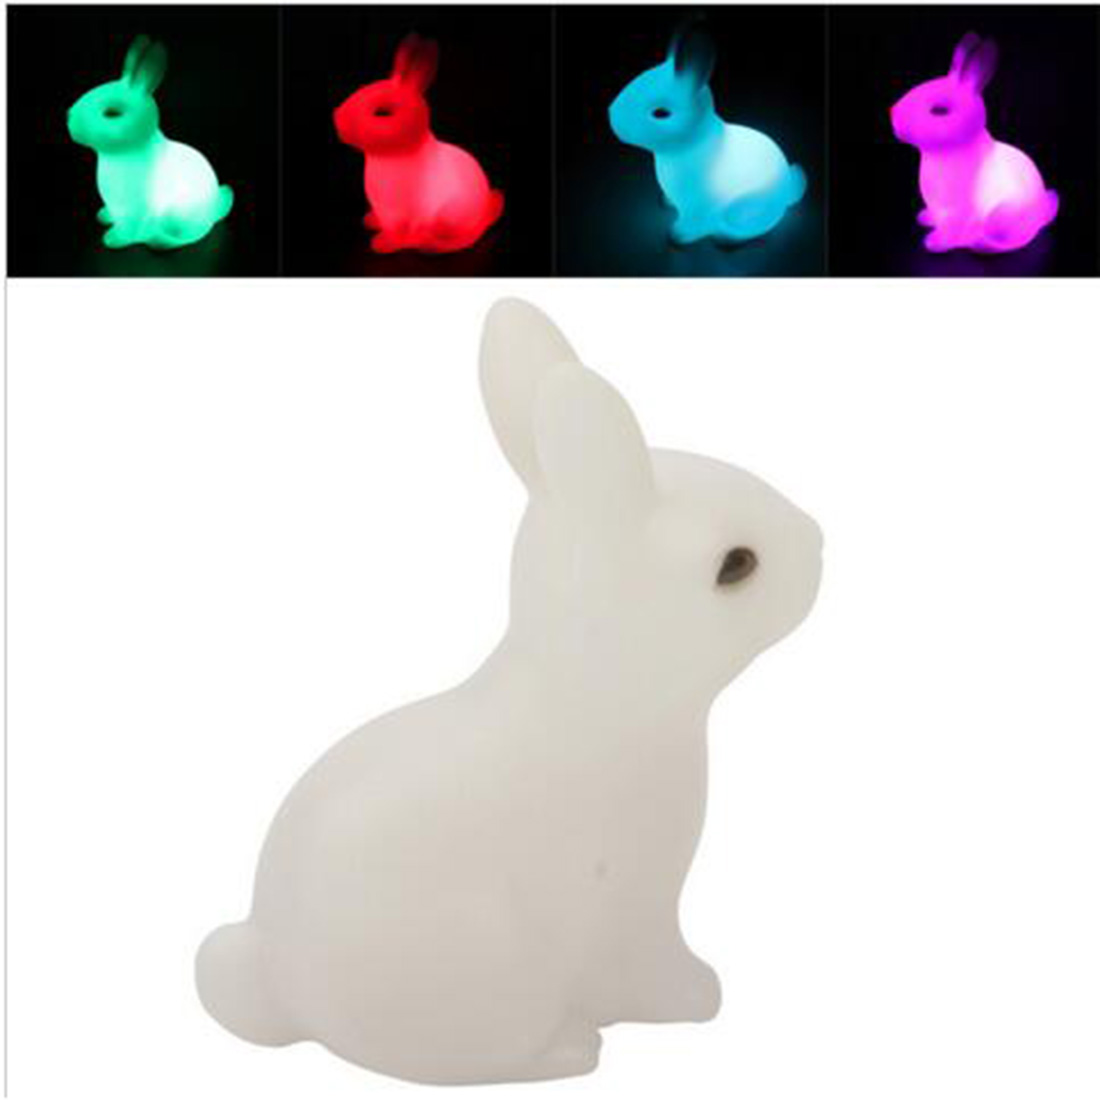 Color Changing Rabbit LED Night Light Animal Cartoon Decorative Lamp Adorable for Children Baby Kids Gift Home Party hotsale color changing rabbit led night light dimmable for children baby kids gift animal cartoon decorative lamp